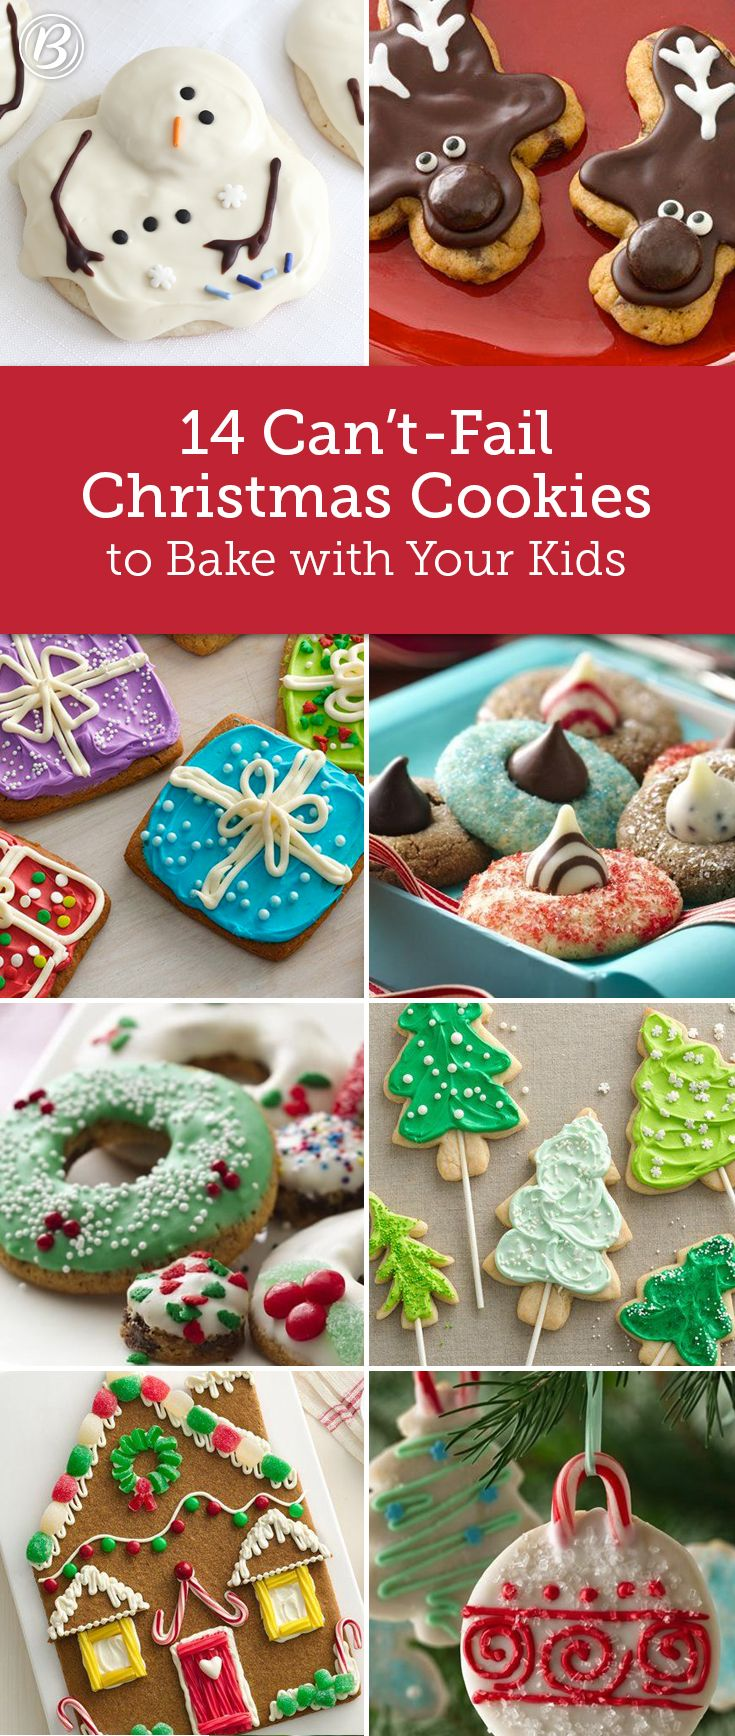 Countdown to Santa's arrival by baking batches of festive cookies together. From an adorably easy gingerbread house to chocolate chip reindeers, these quick-fix recipes are as fun to make as they are to eat.